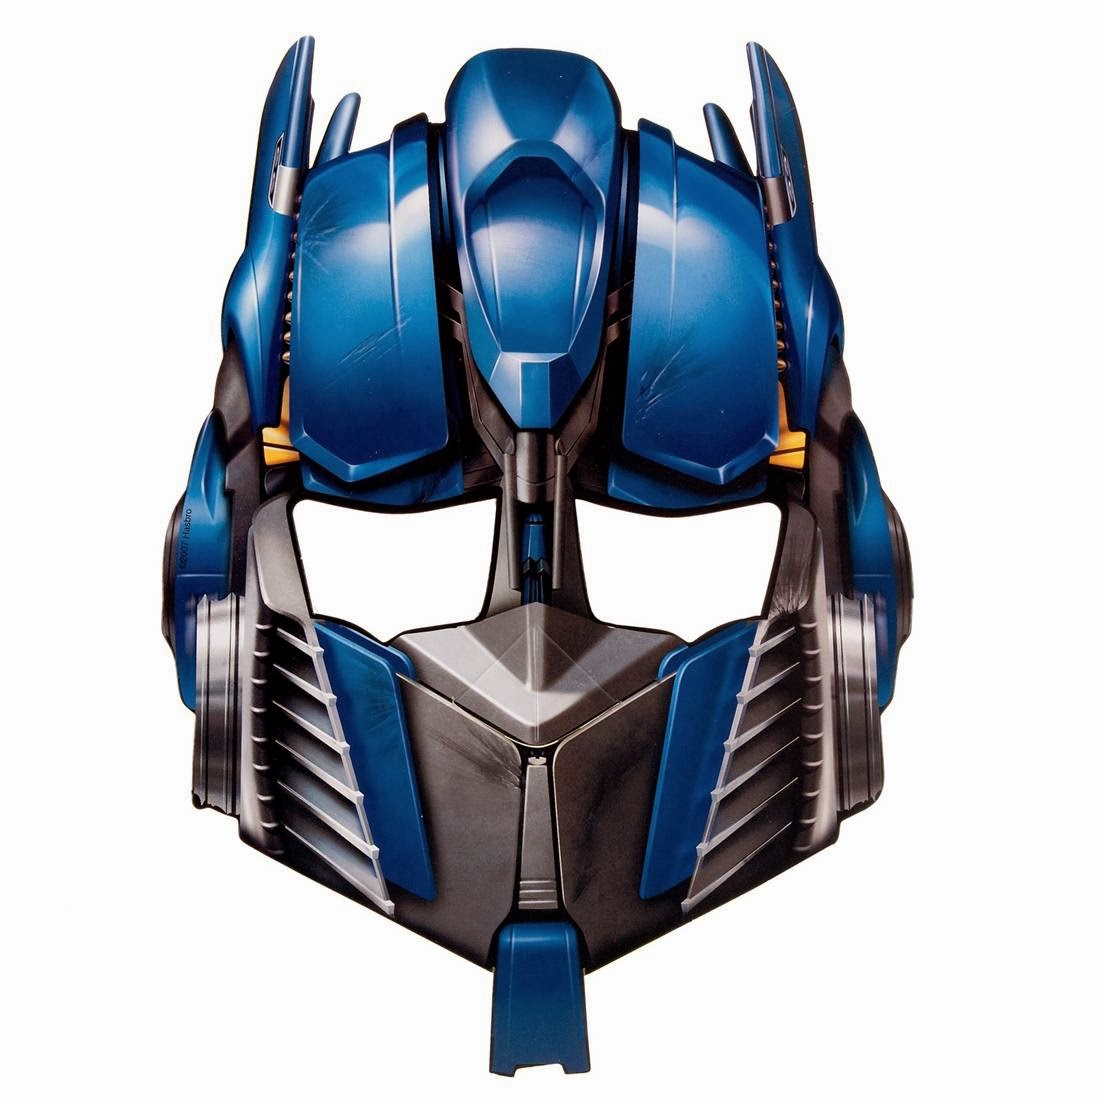 Transformers Free Printable Masks Oh My Fiesta In English